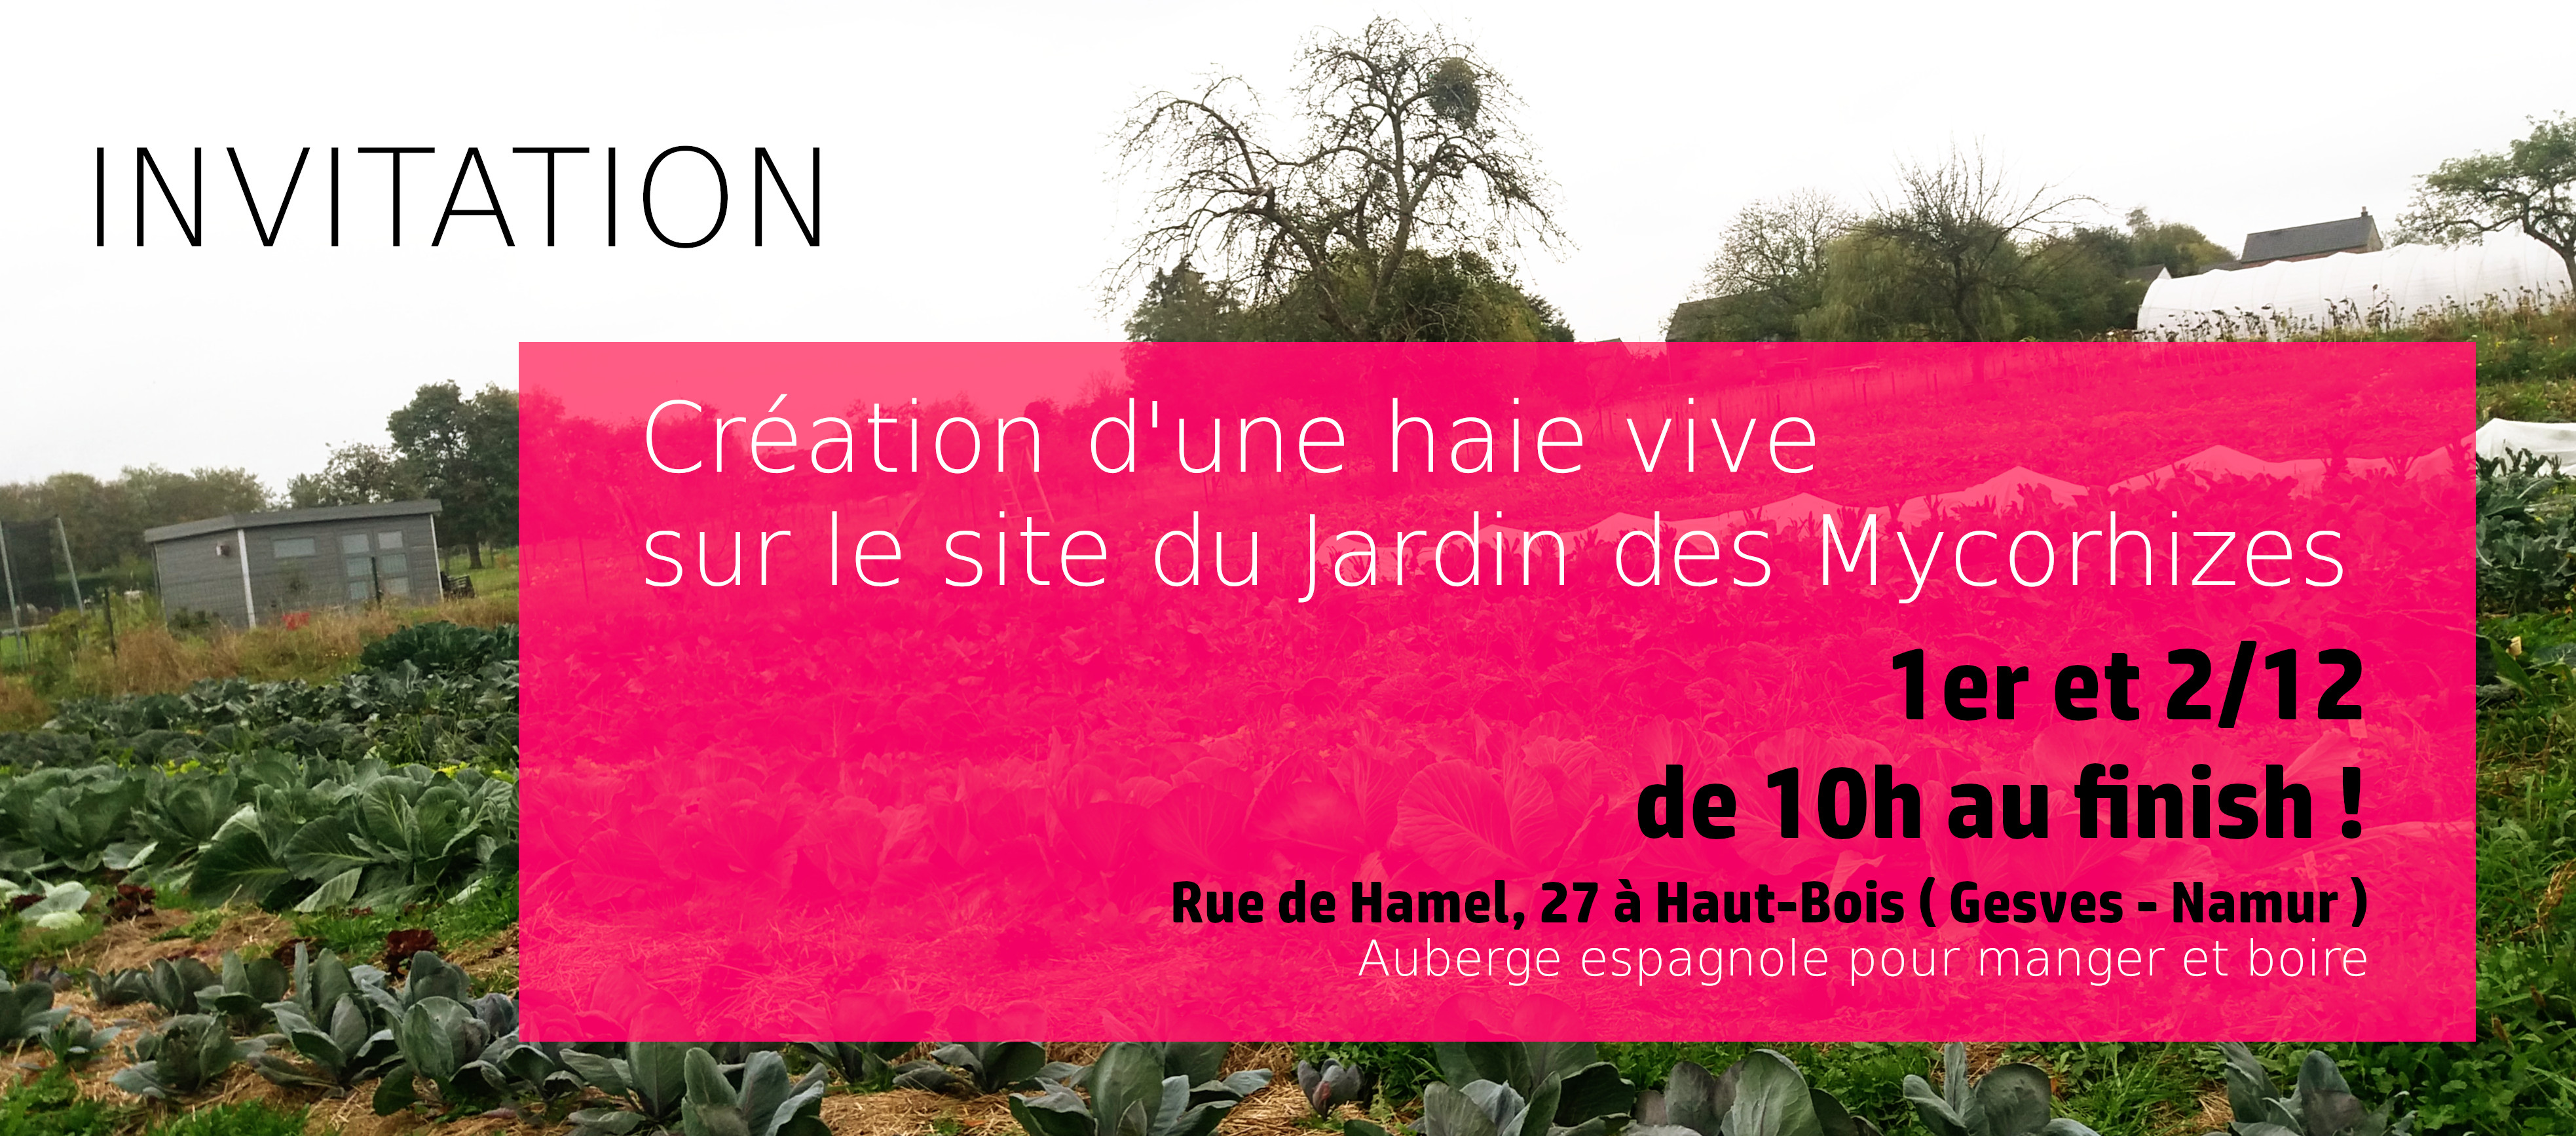 invitation2-chantier-coll